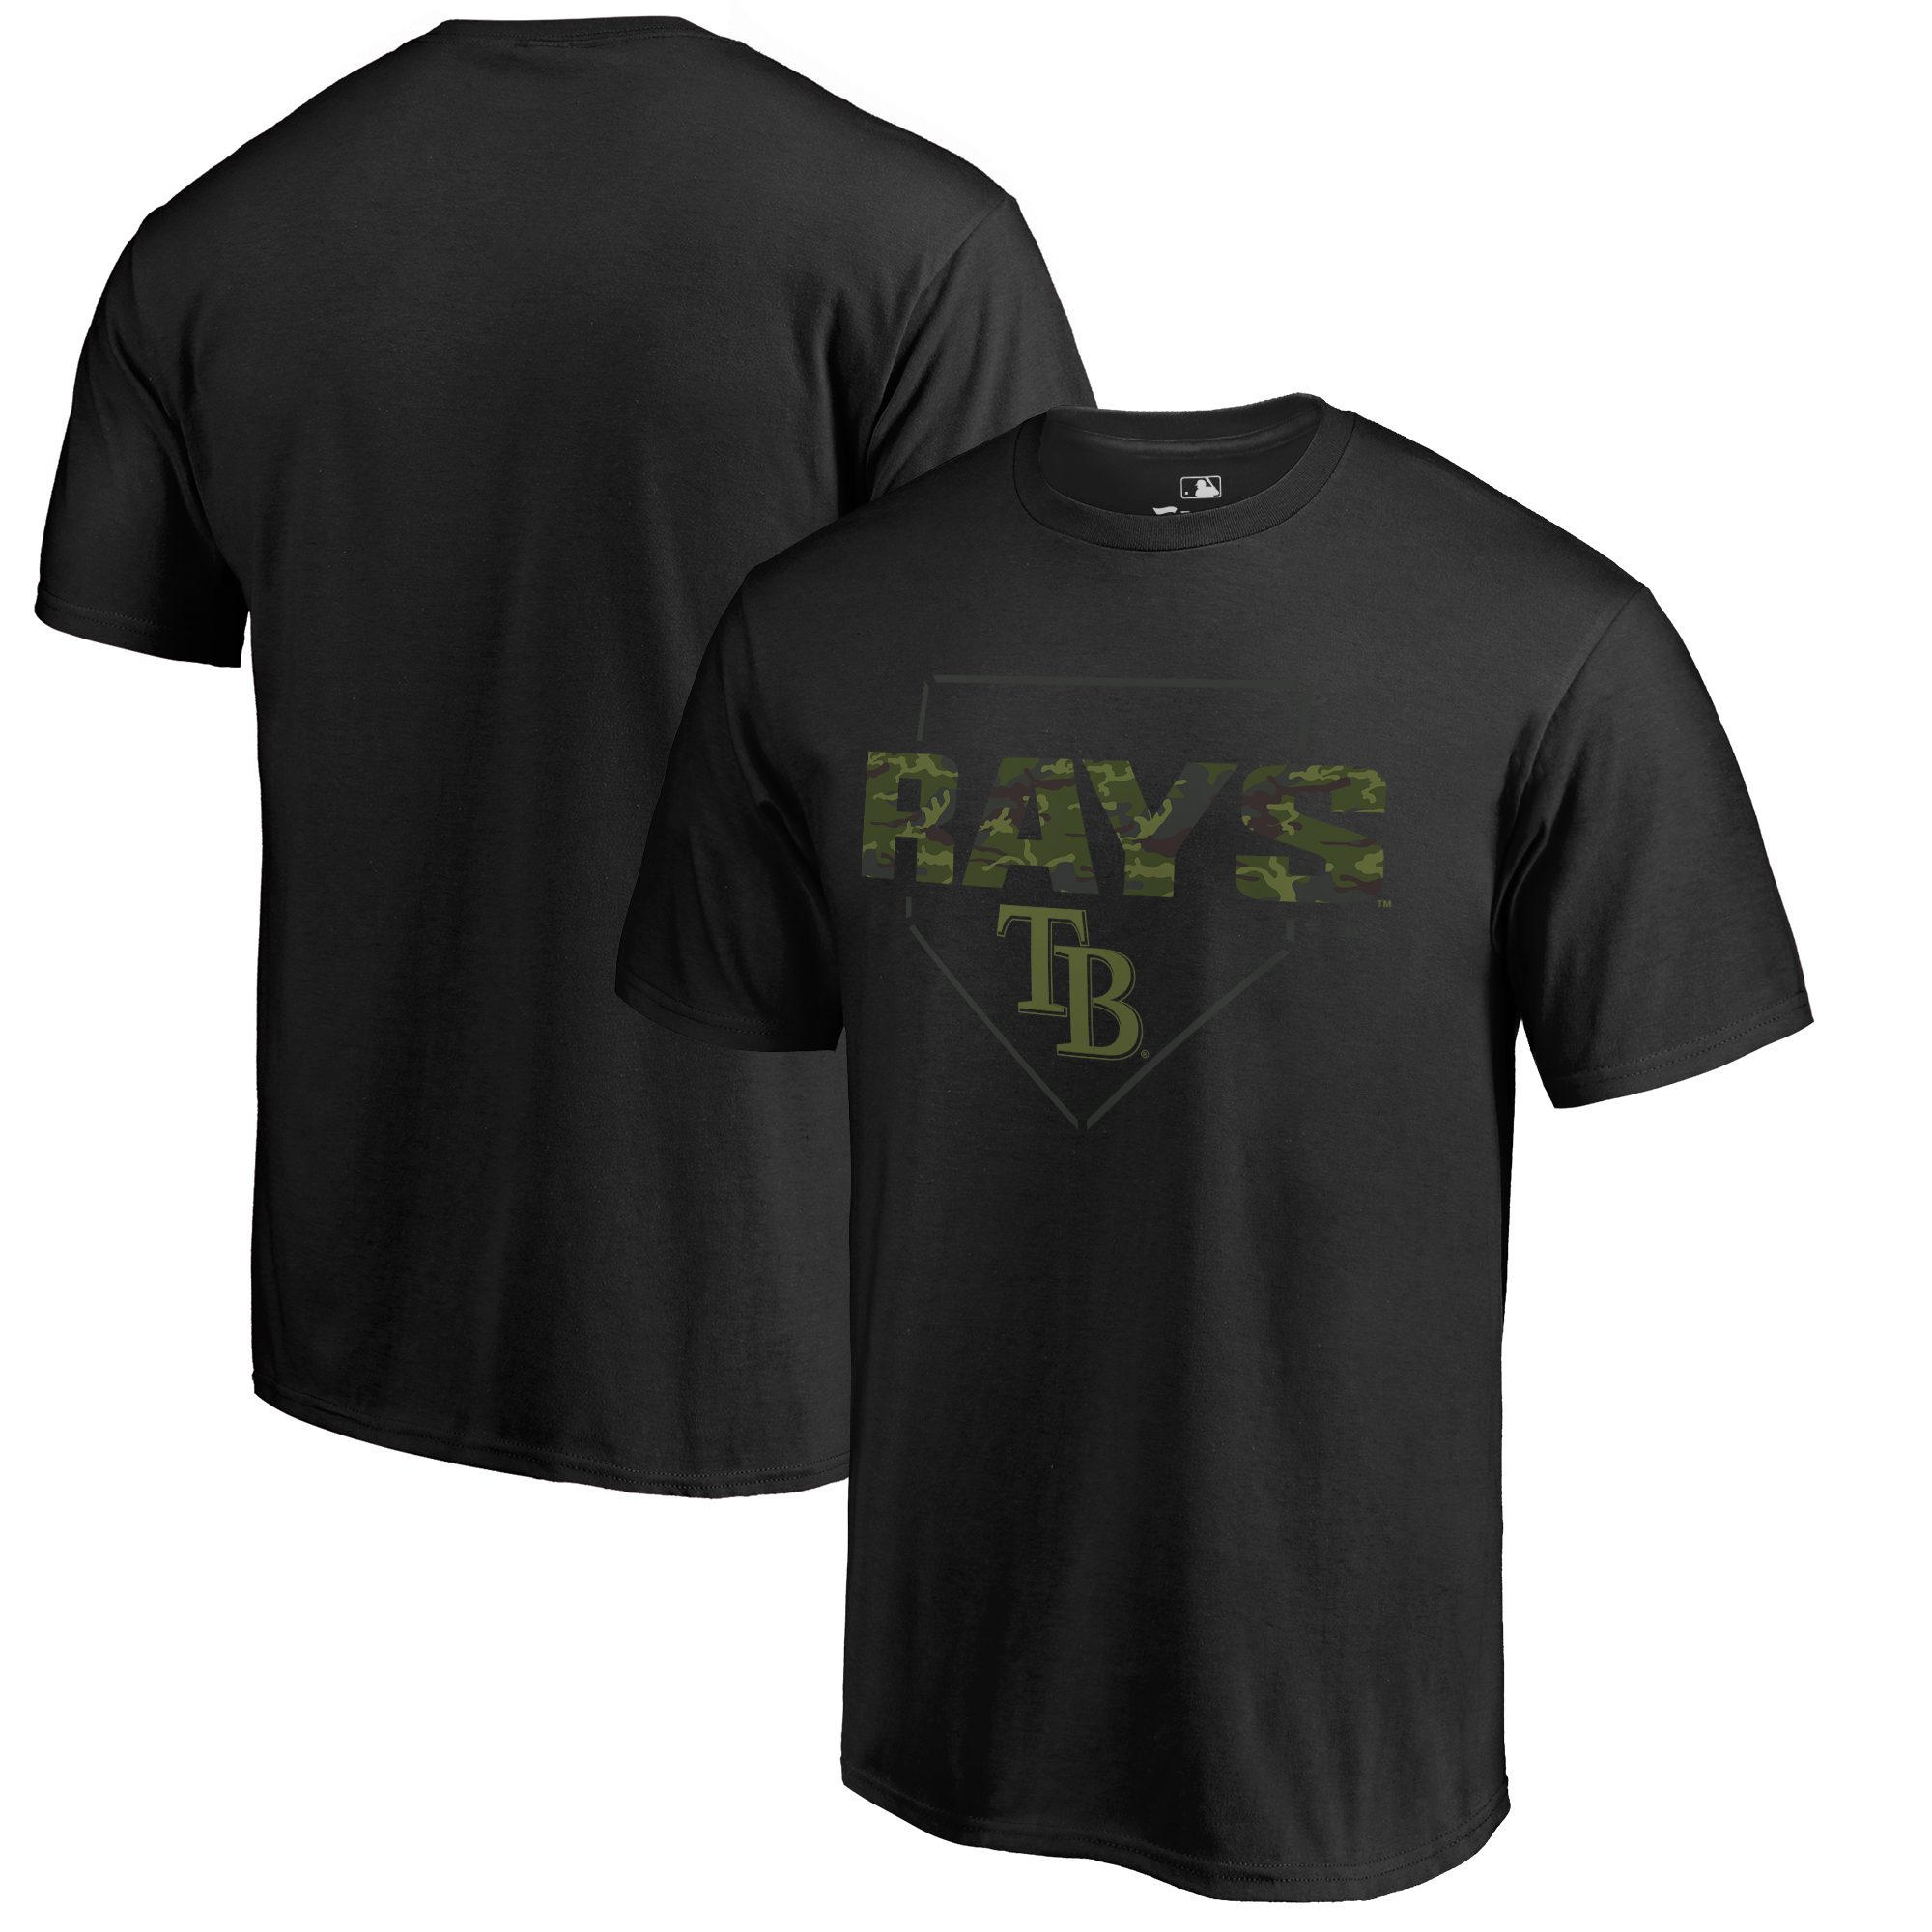 Tampa Bay Rays Fanatics Branded Big & Tall Memorial Camo T-Shirt - Black